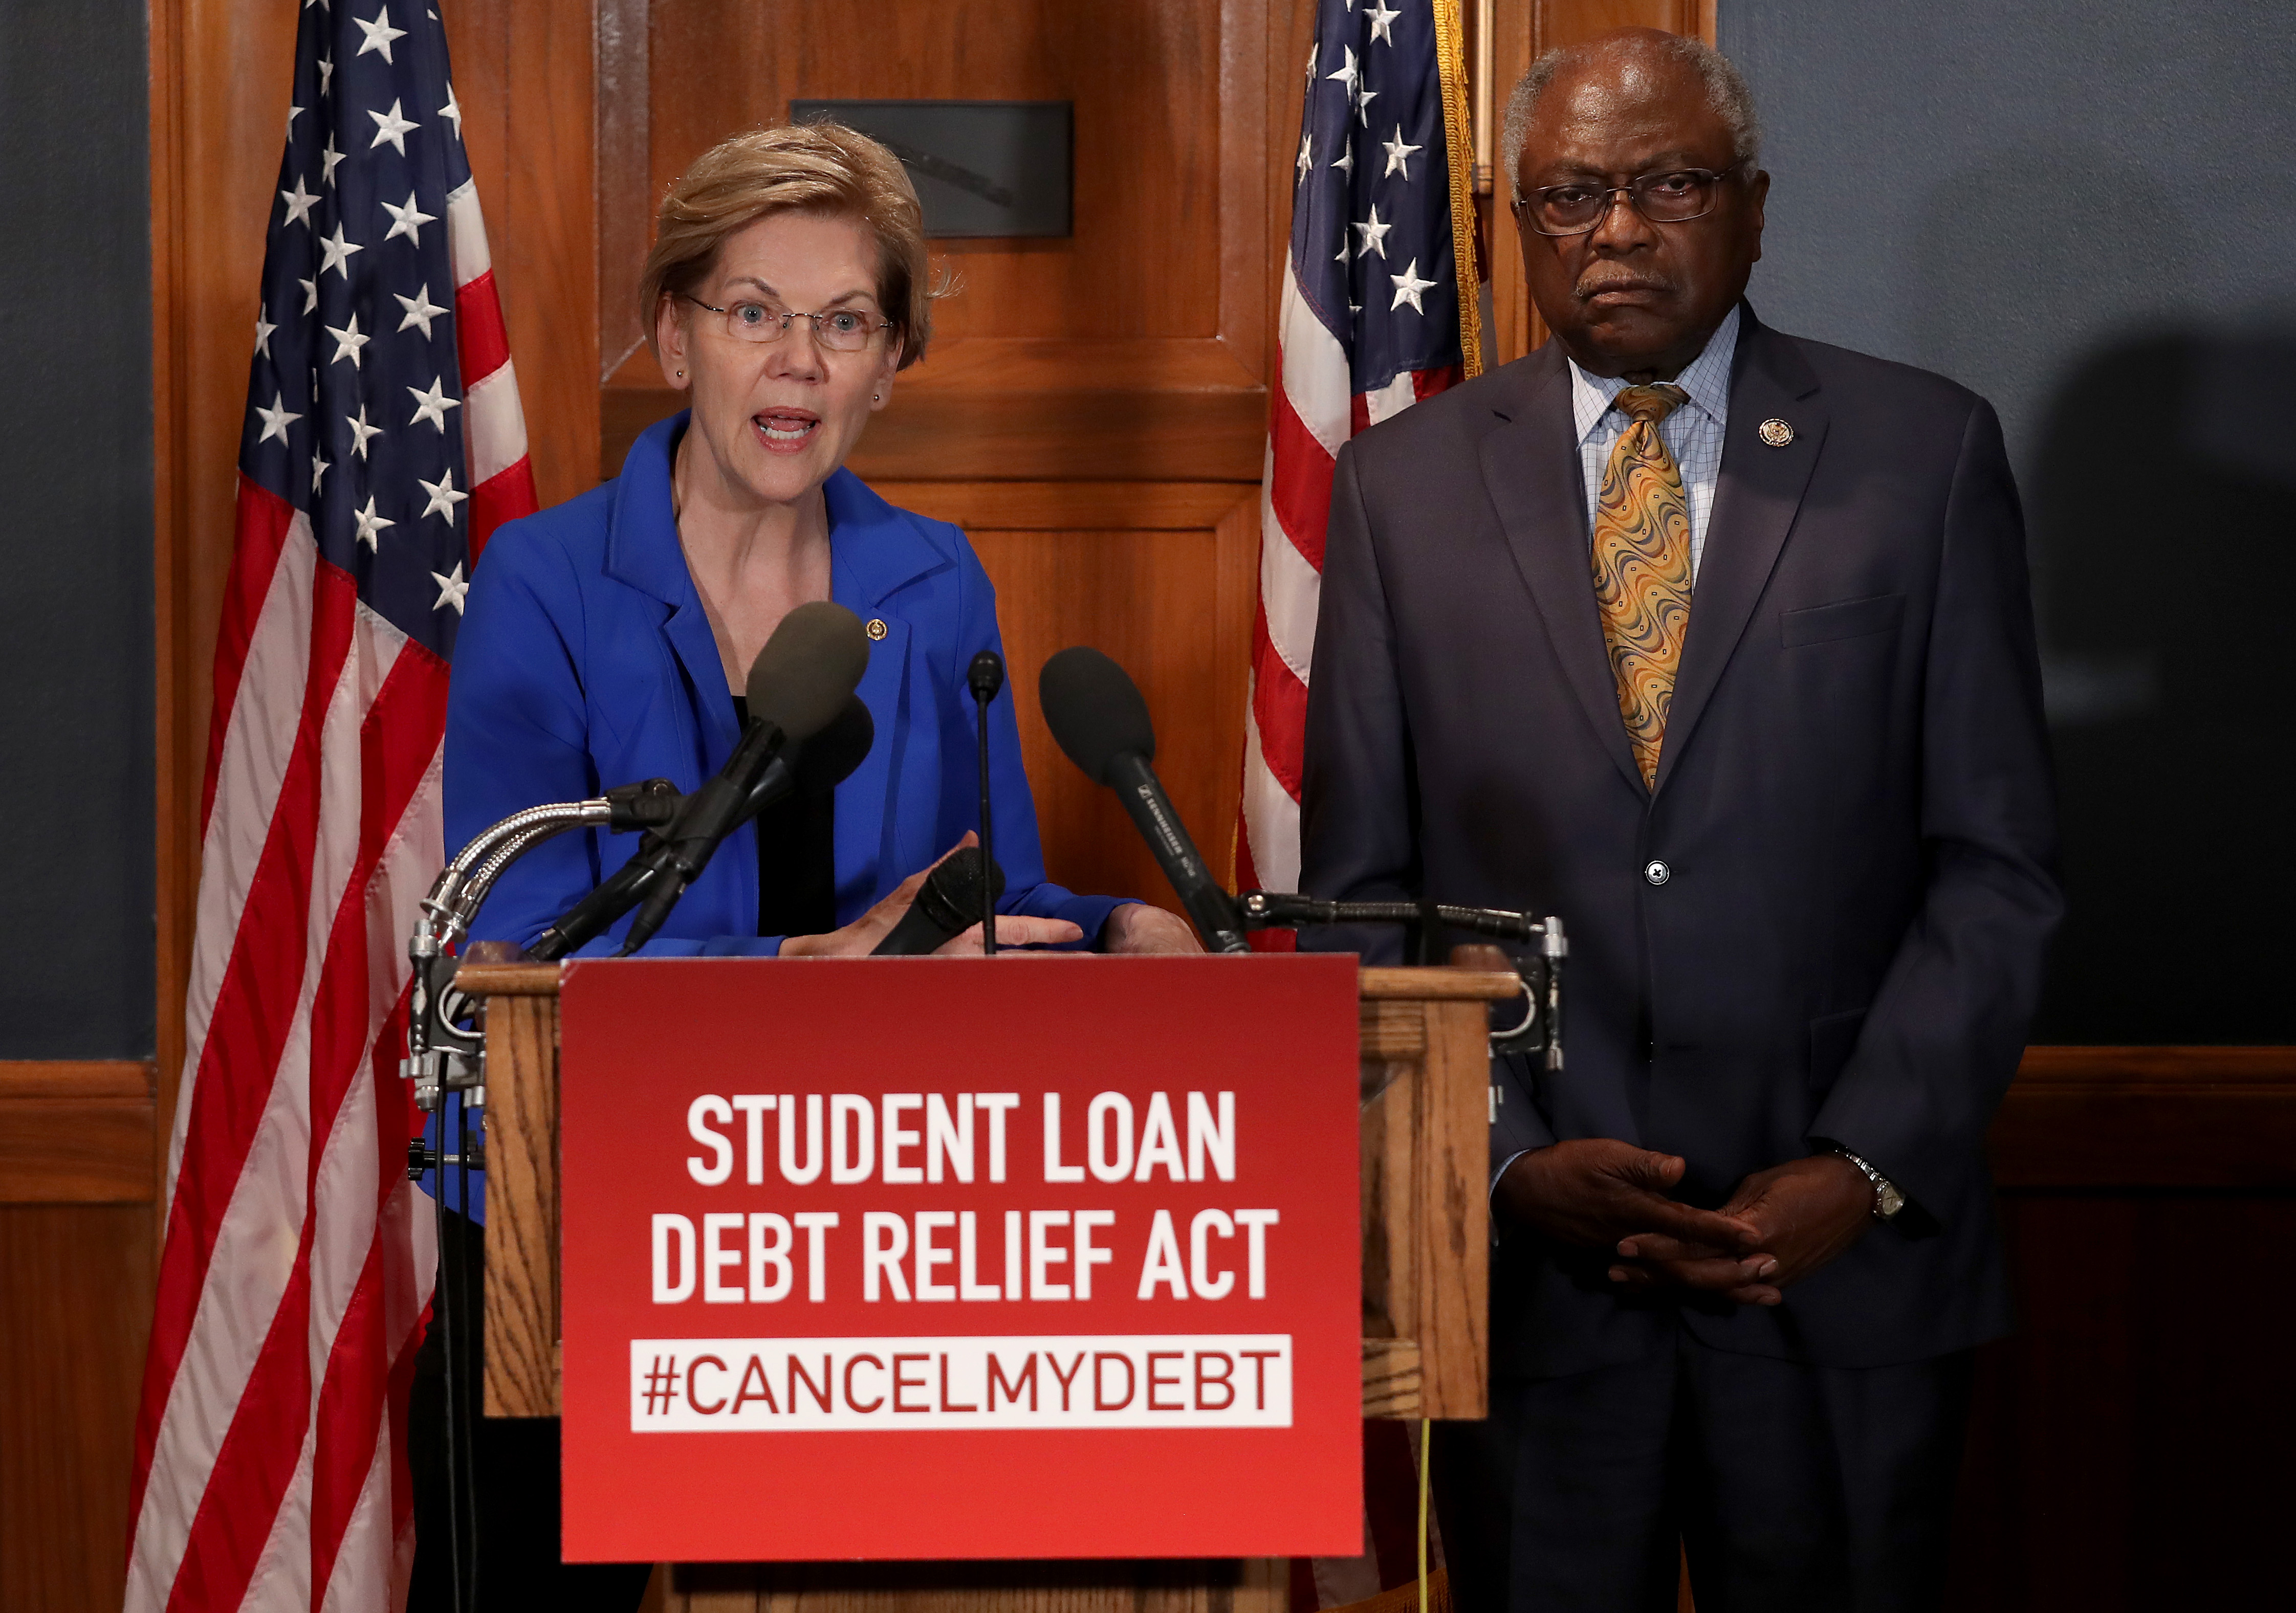 WASHINGTON, DC - JULY 23: Sen. Elizabeth Warren (D-MA) speaks during a press conference on Capitol Hill July 23, 2019 in Washington, DC. Warren spoke with Rep. Jim Clyburn (R) (D-SC) on legislation to cancel student loan debt for millions of Americans. (Win McNamee/Getty Images)